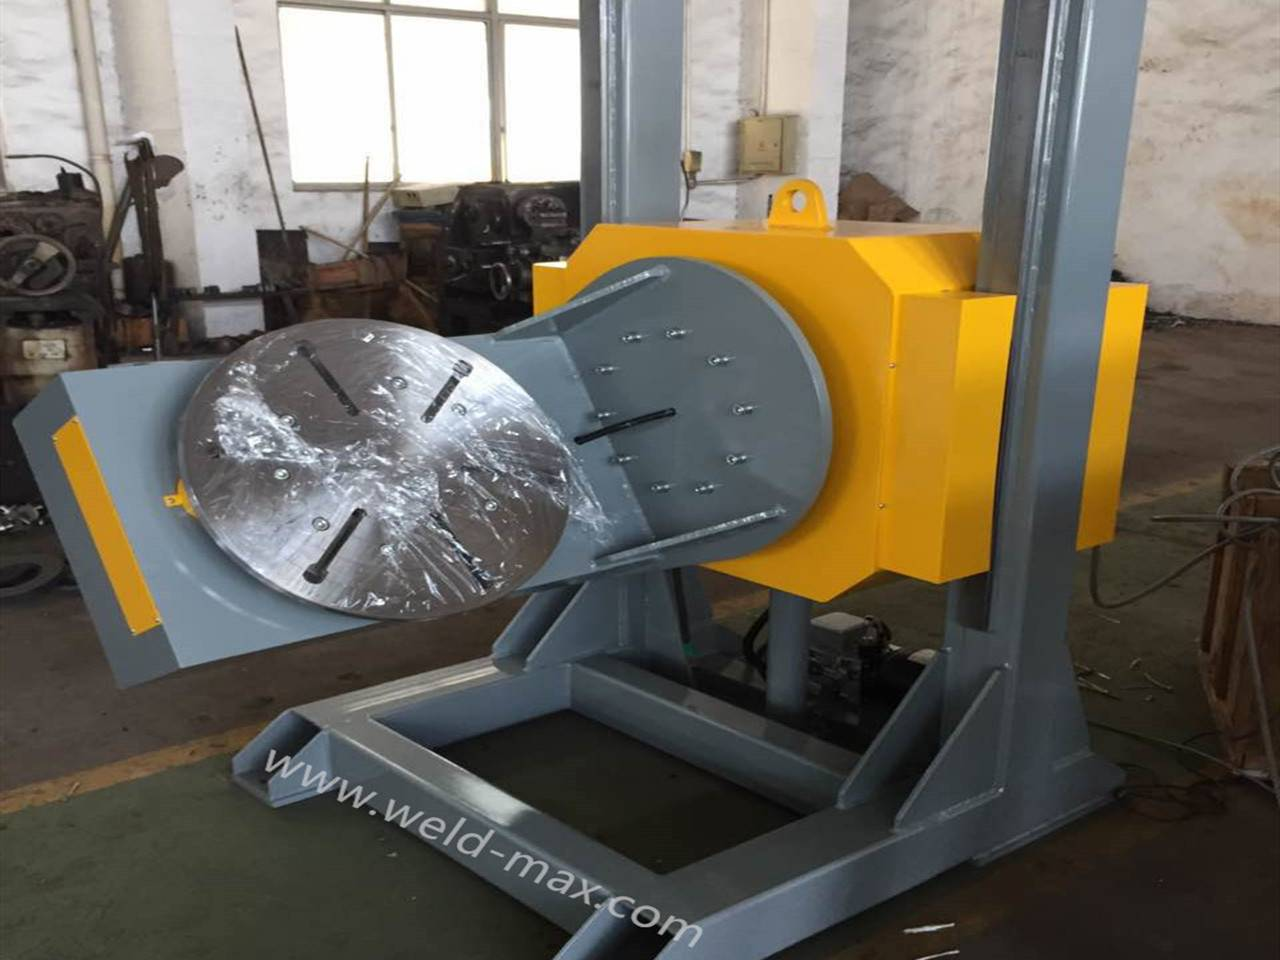 HBJ-05 Elevting L-type Welding Positioner With 0.09-0.9rpm Overturning And Vertical Turning Table Featured Image